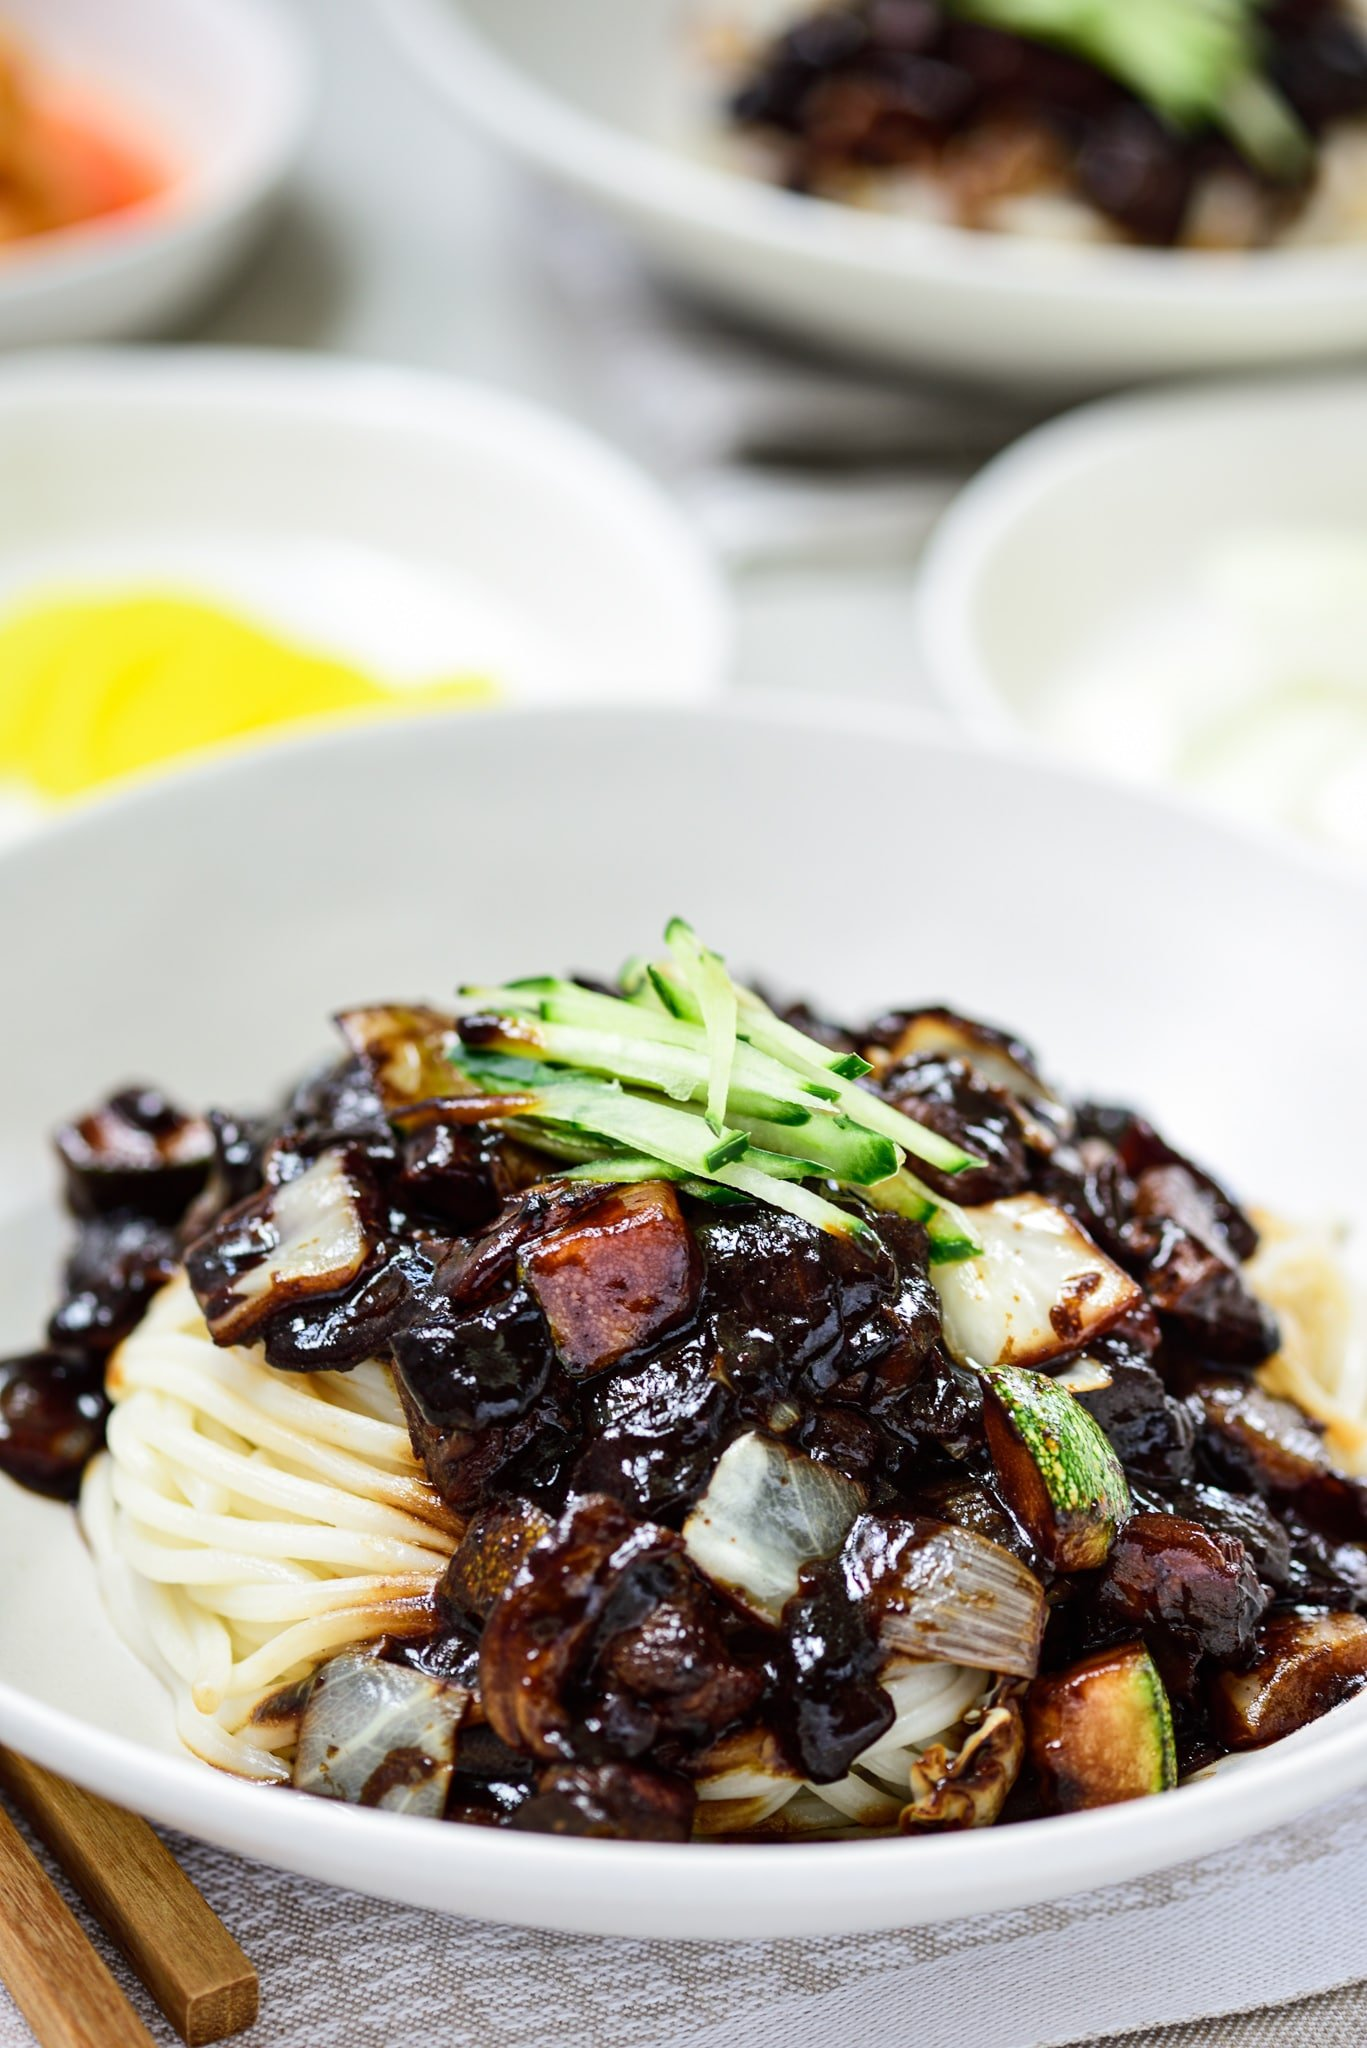 DSC1677 - Jajangmyeon (Noodles in Black Bean Sauce)